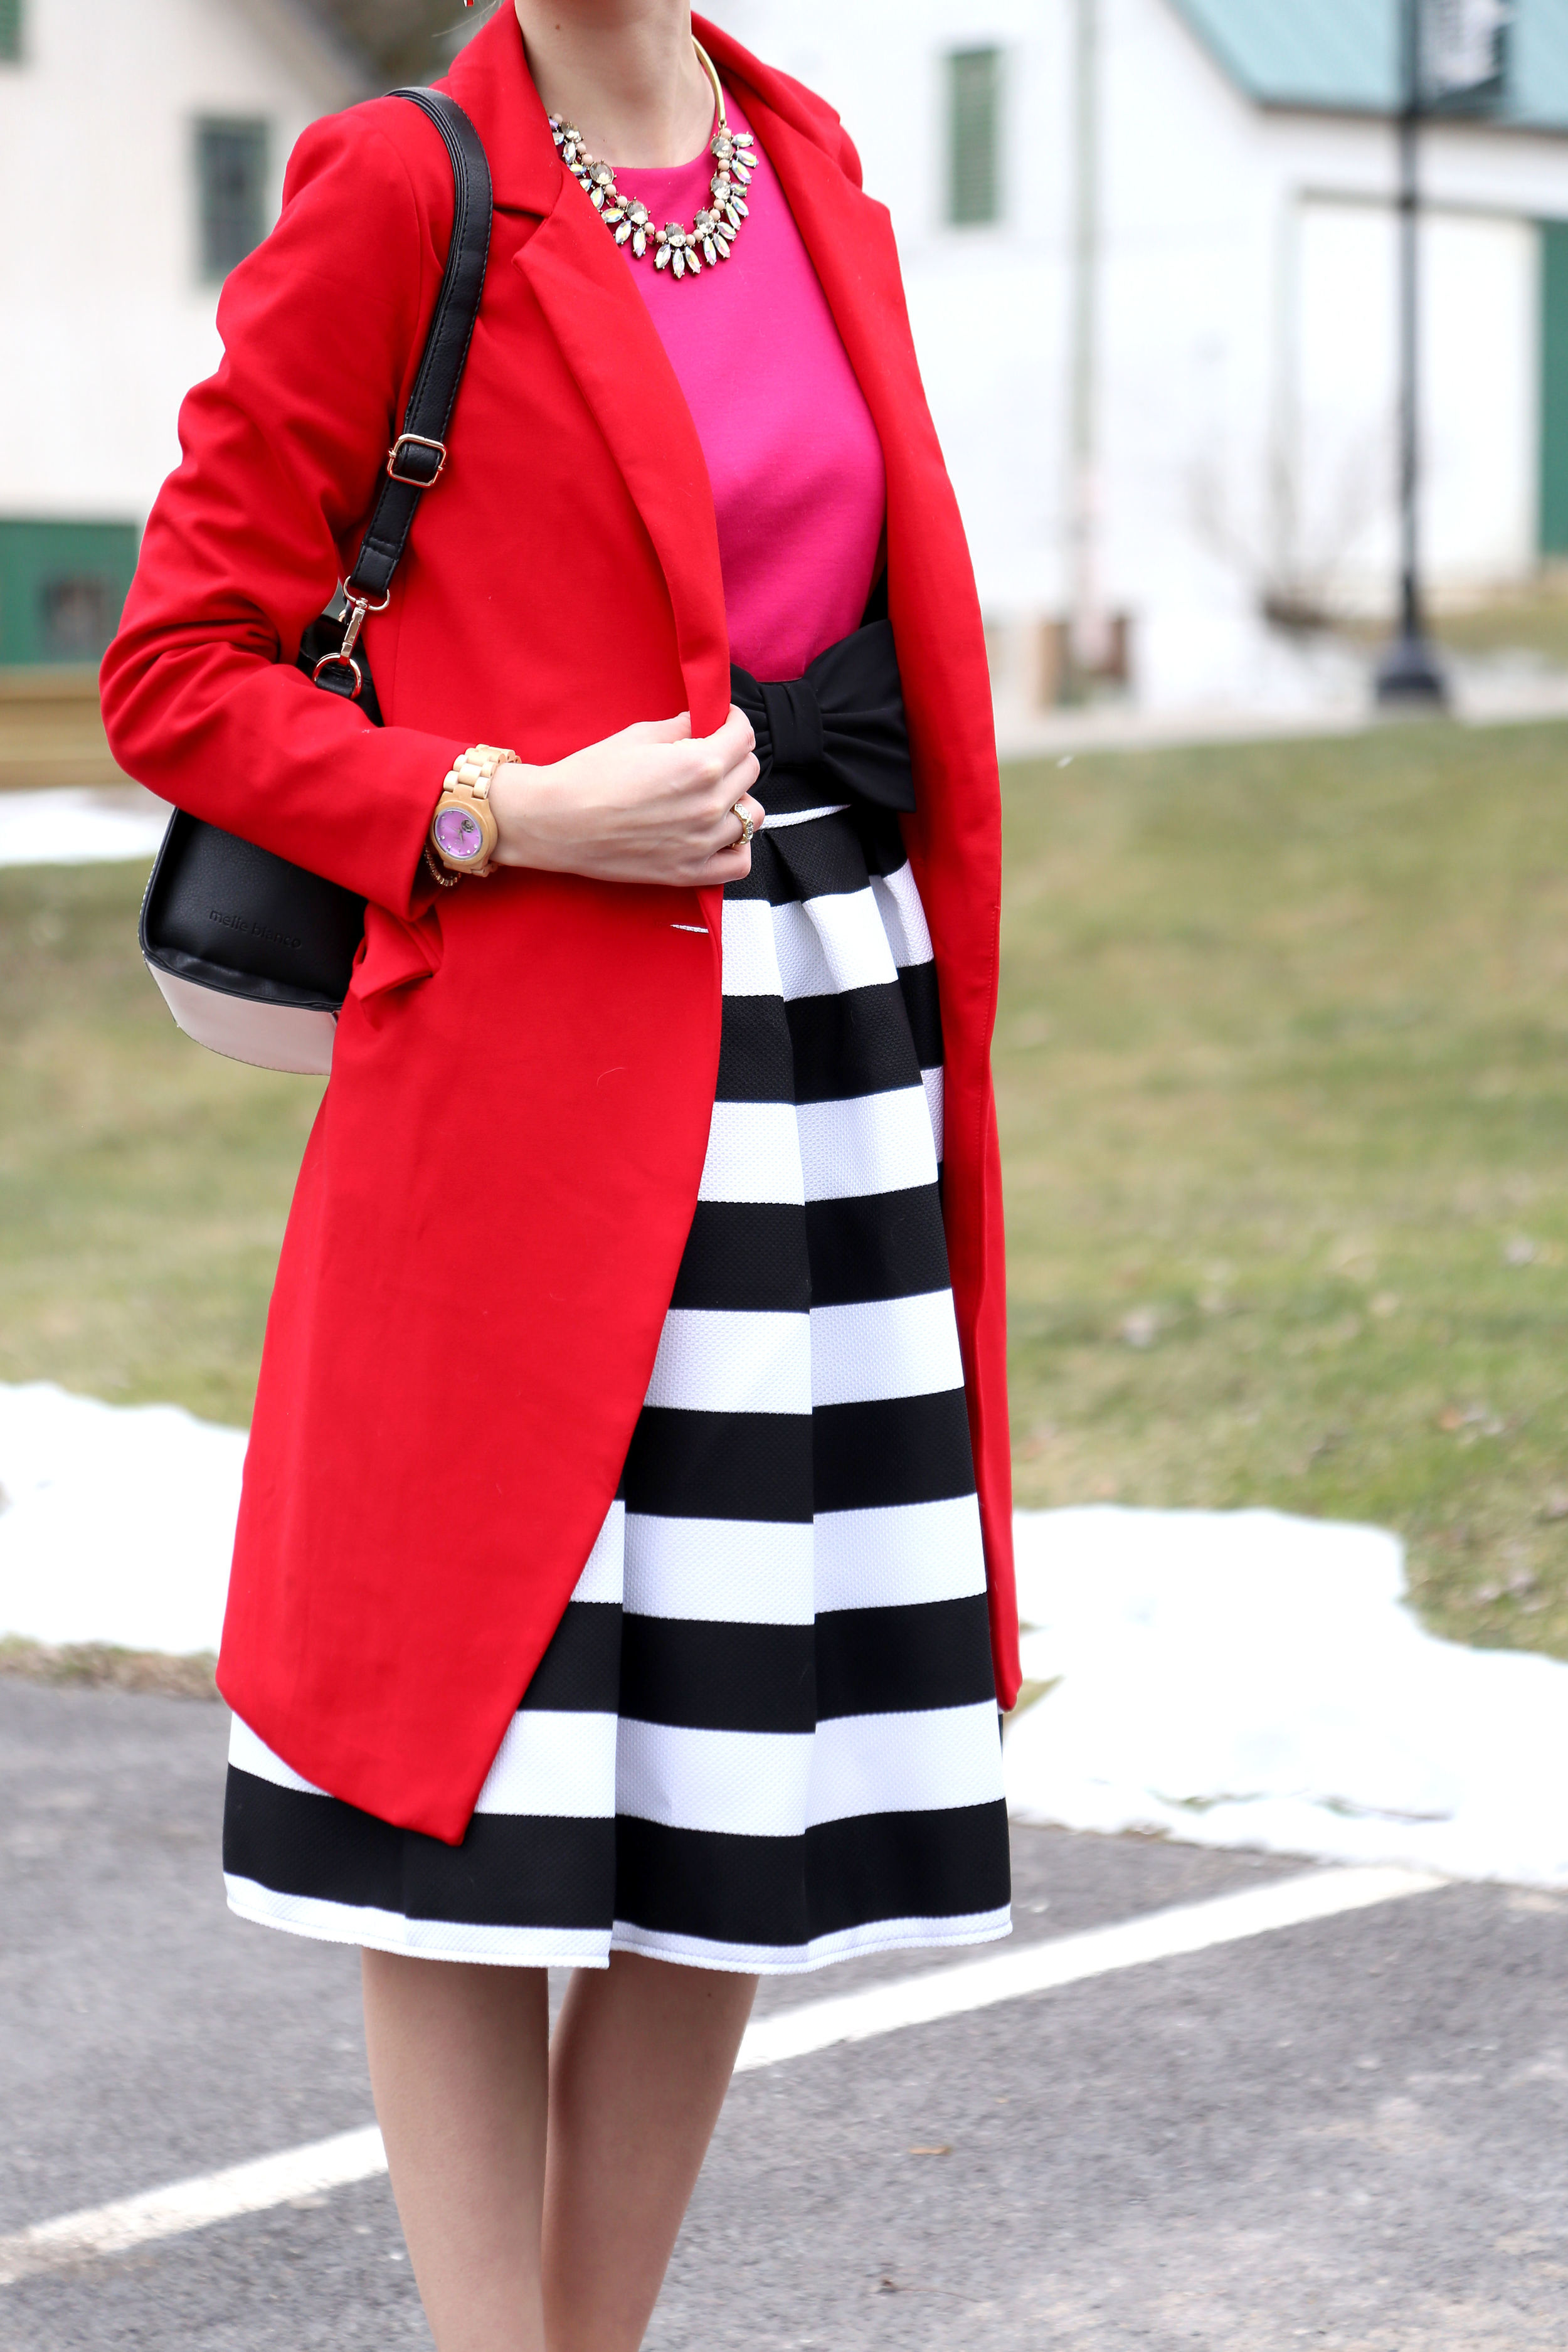 Pink x Red x Stripes- Enchanting Elegance